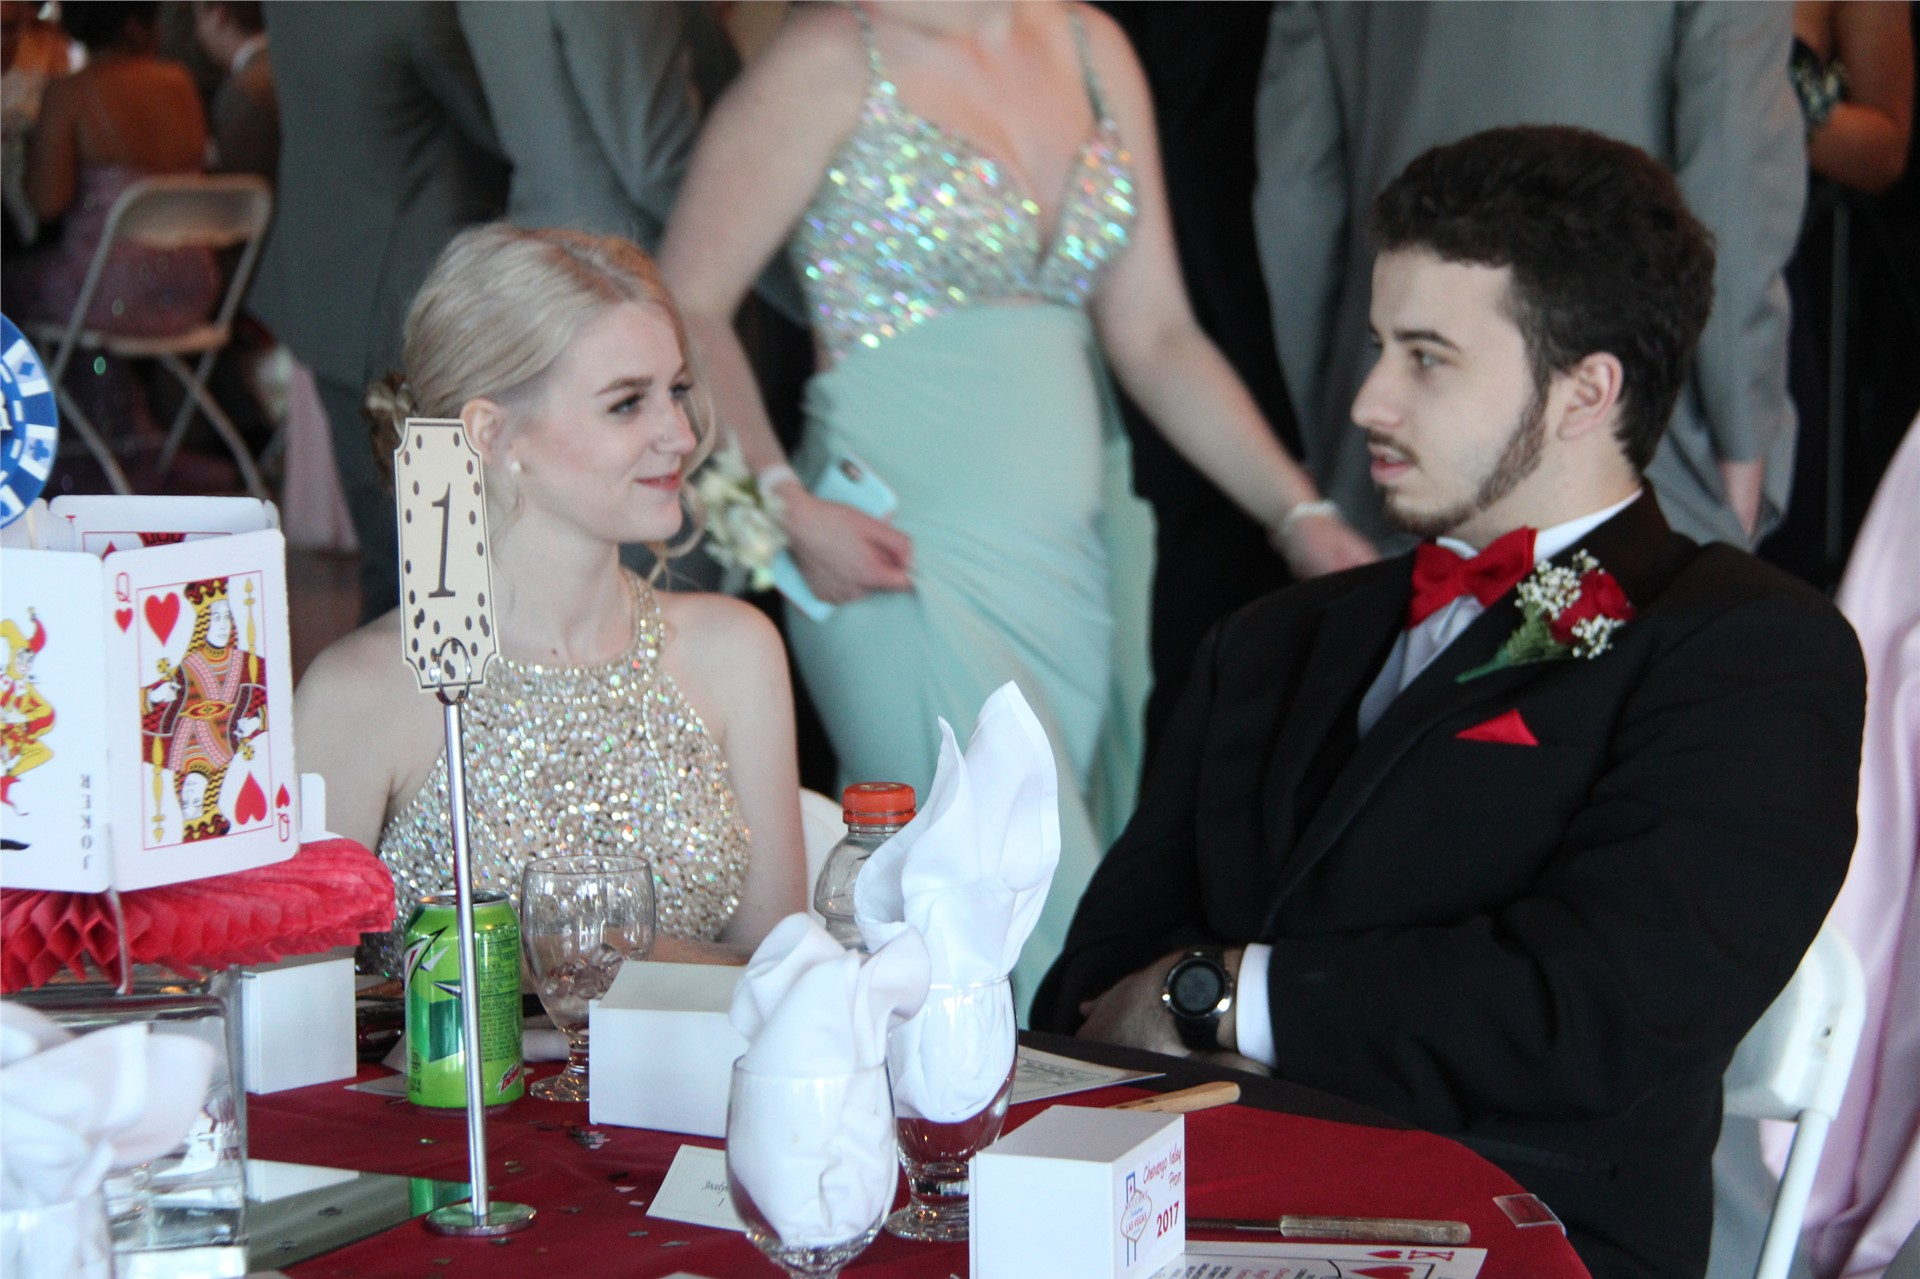 male and female student talk while sitting at table